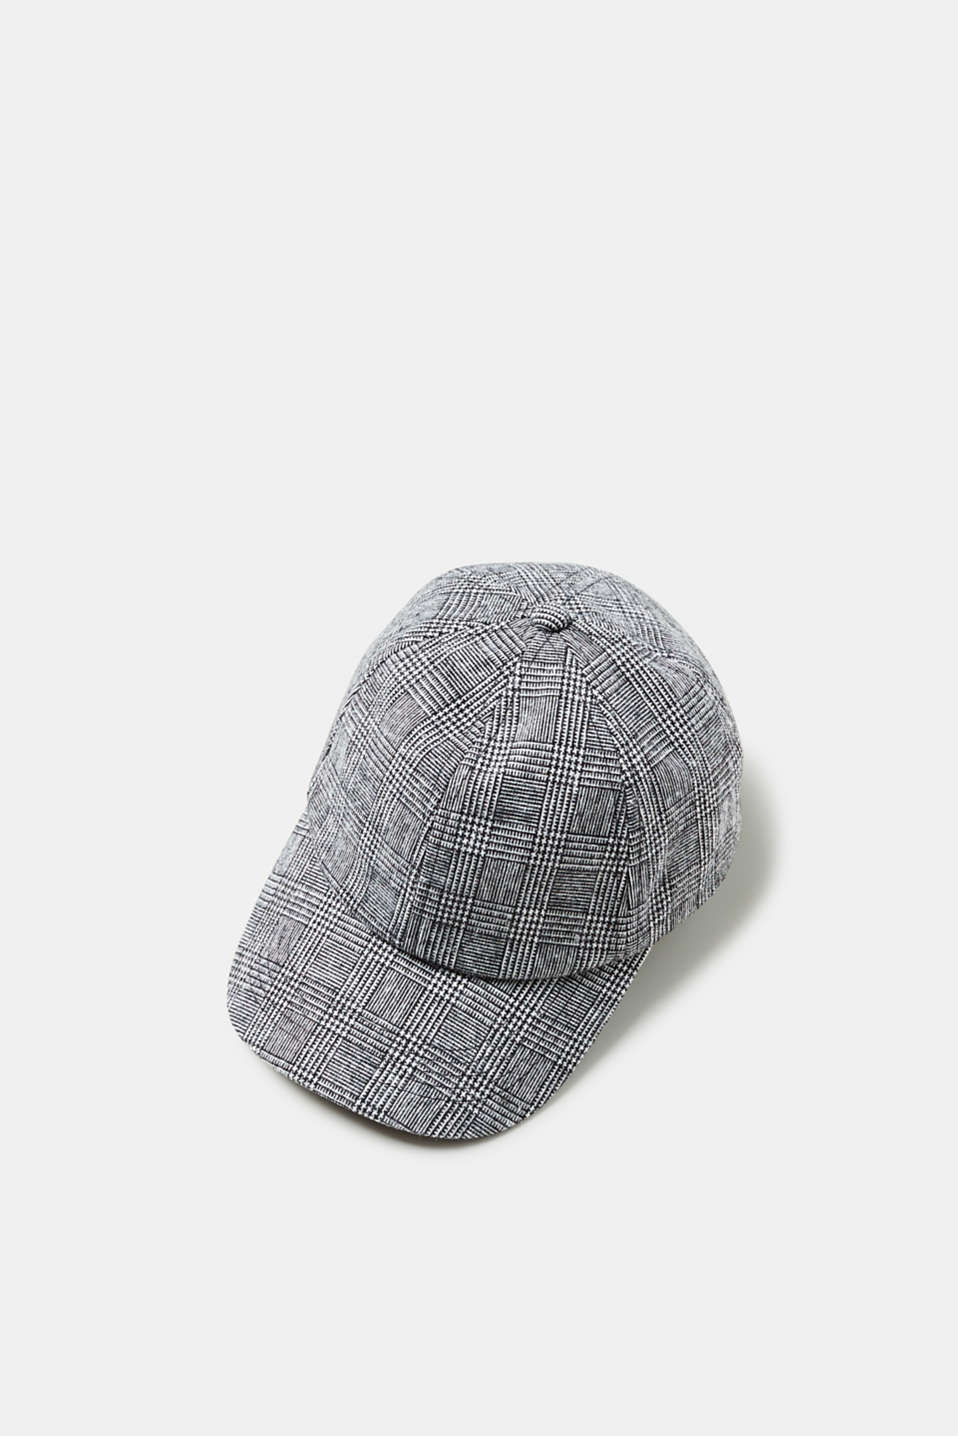 Esprit - Cap with a bow and a glencheck pattern